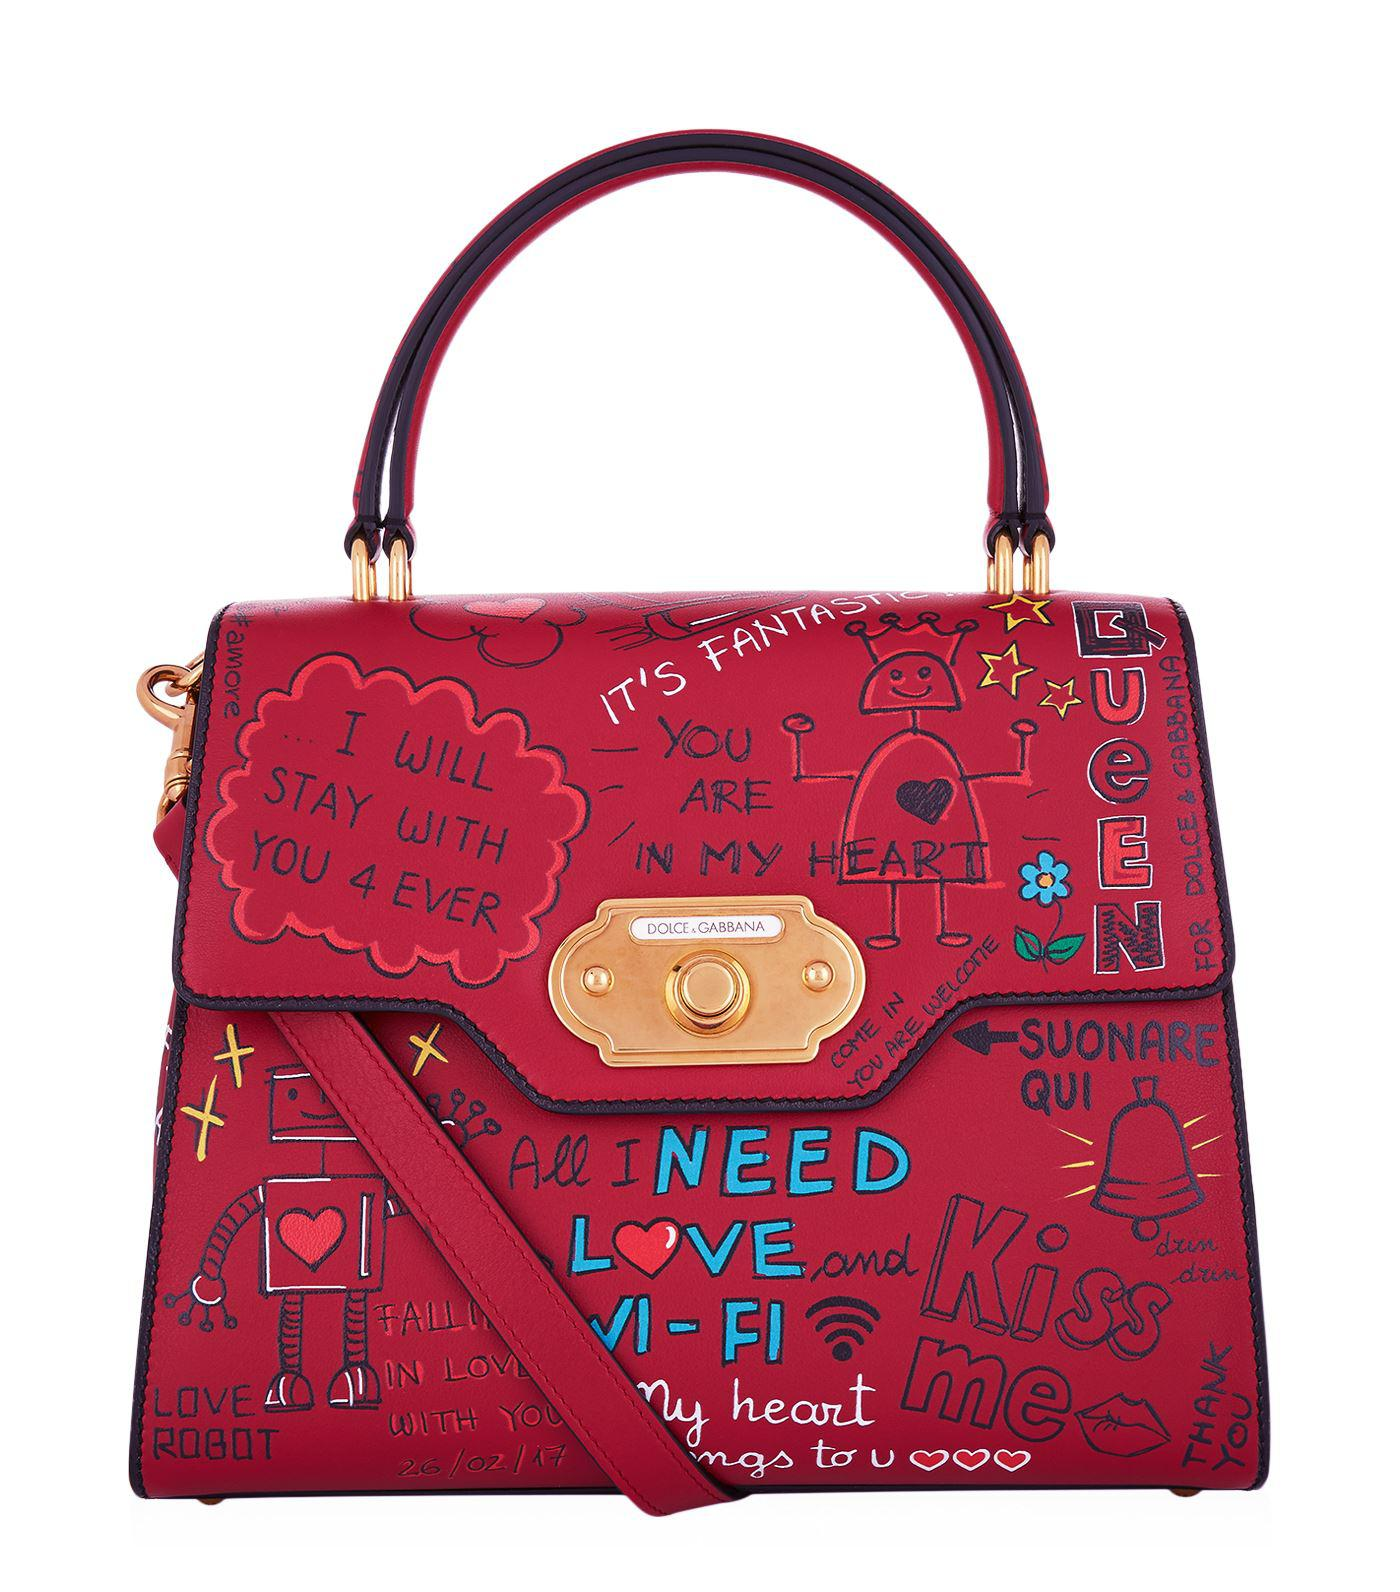 Welcome doorbell floral-print leather bag Dolce & Gabbana lDWG32zMtc